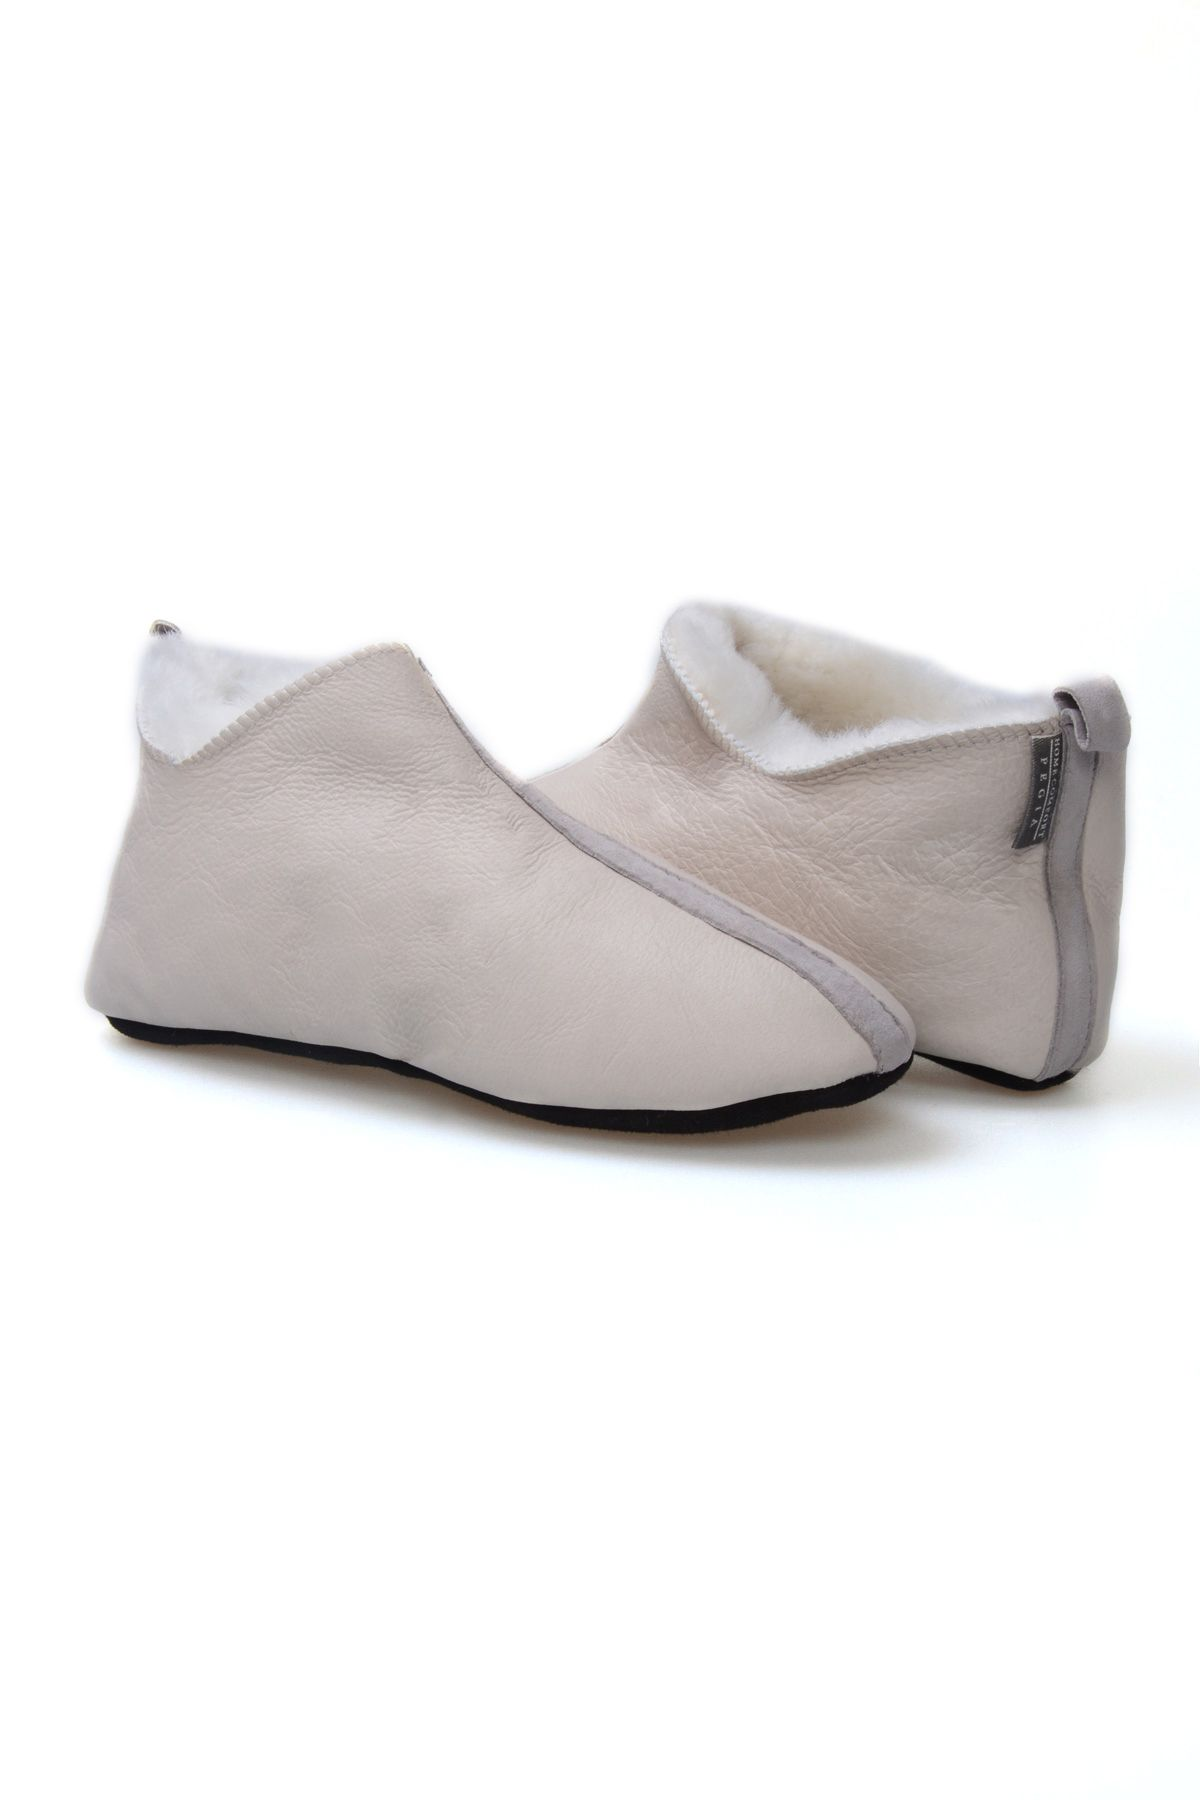 Pegia Women's Sheepskin Slippers 980502 Gray